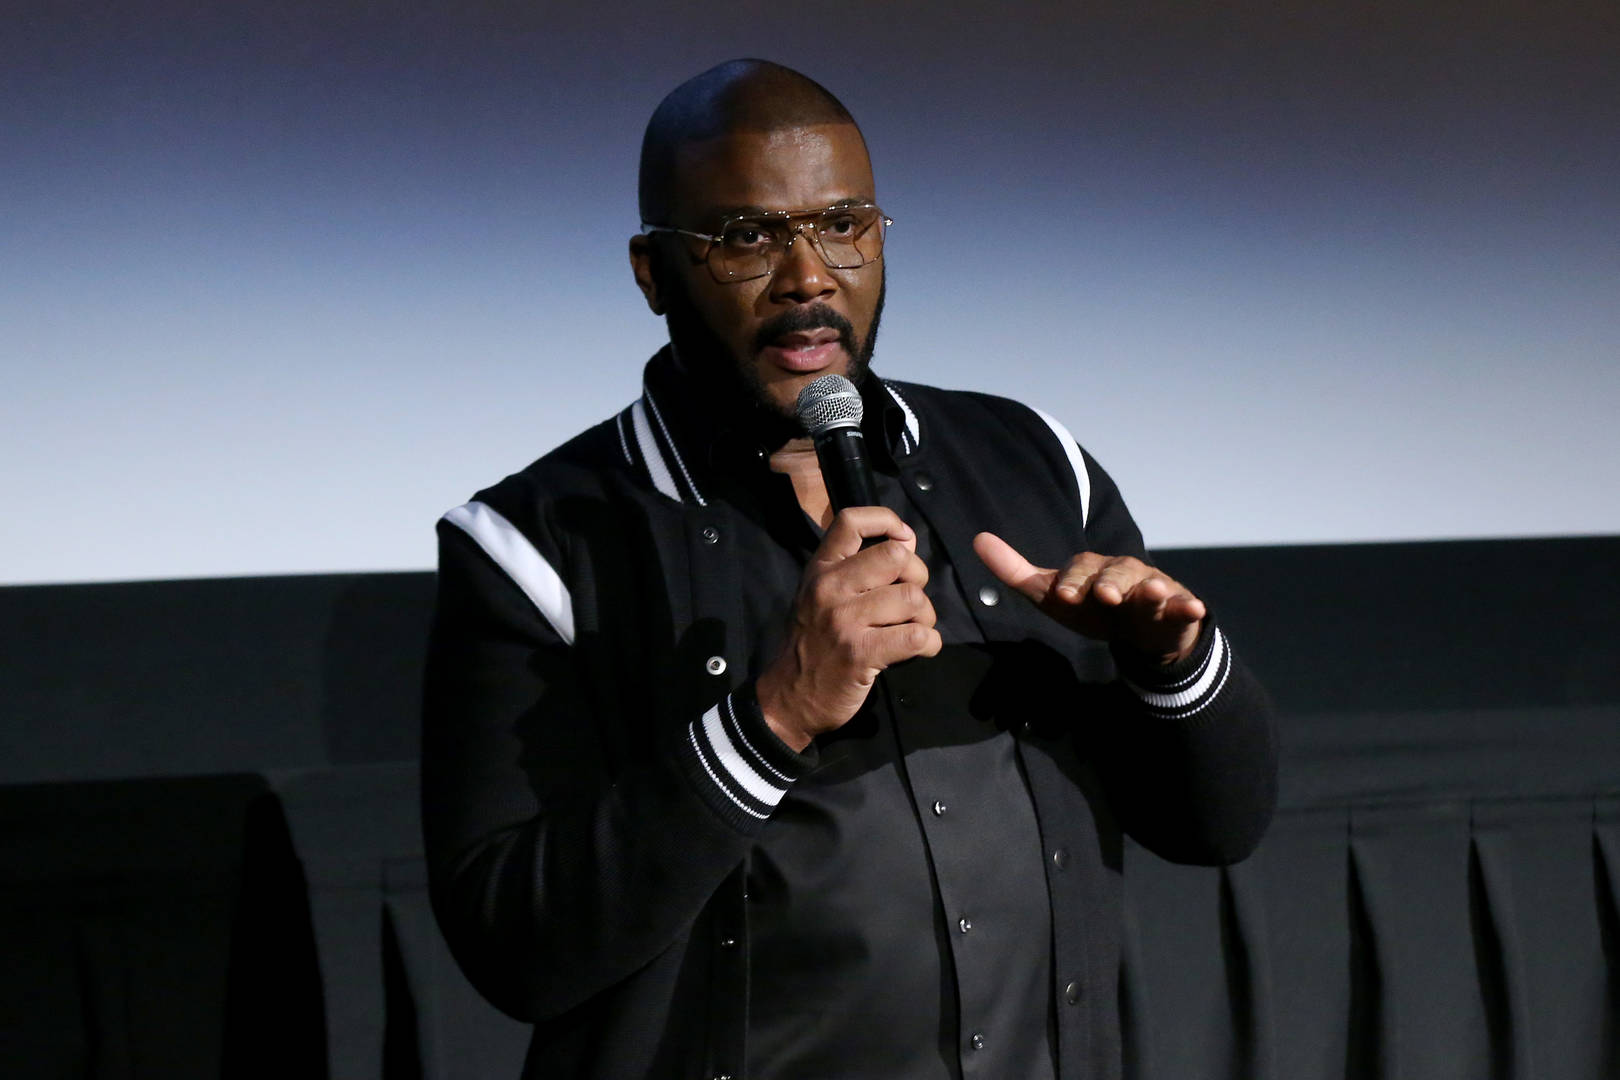 Tyler Perry nephew Gavin Porter hanging hang himself commit suicide suspicious family prison